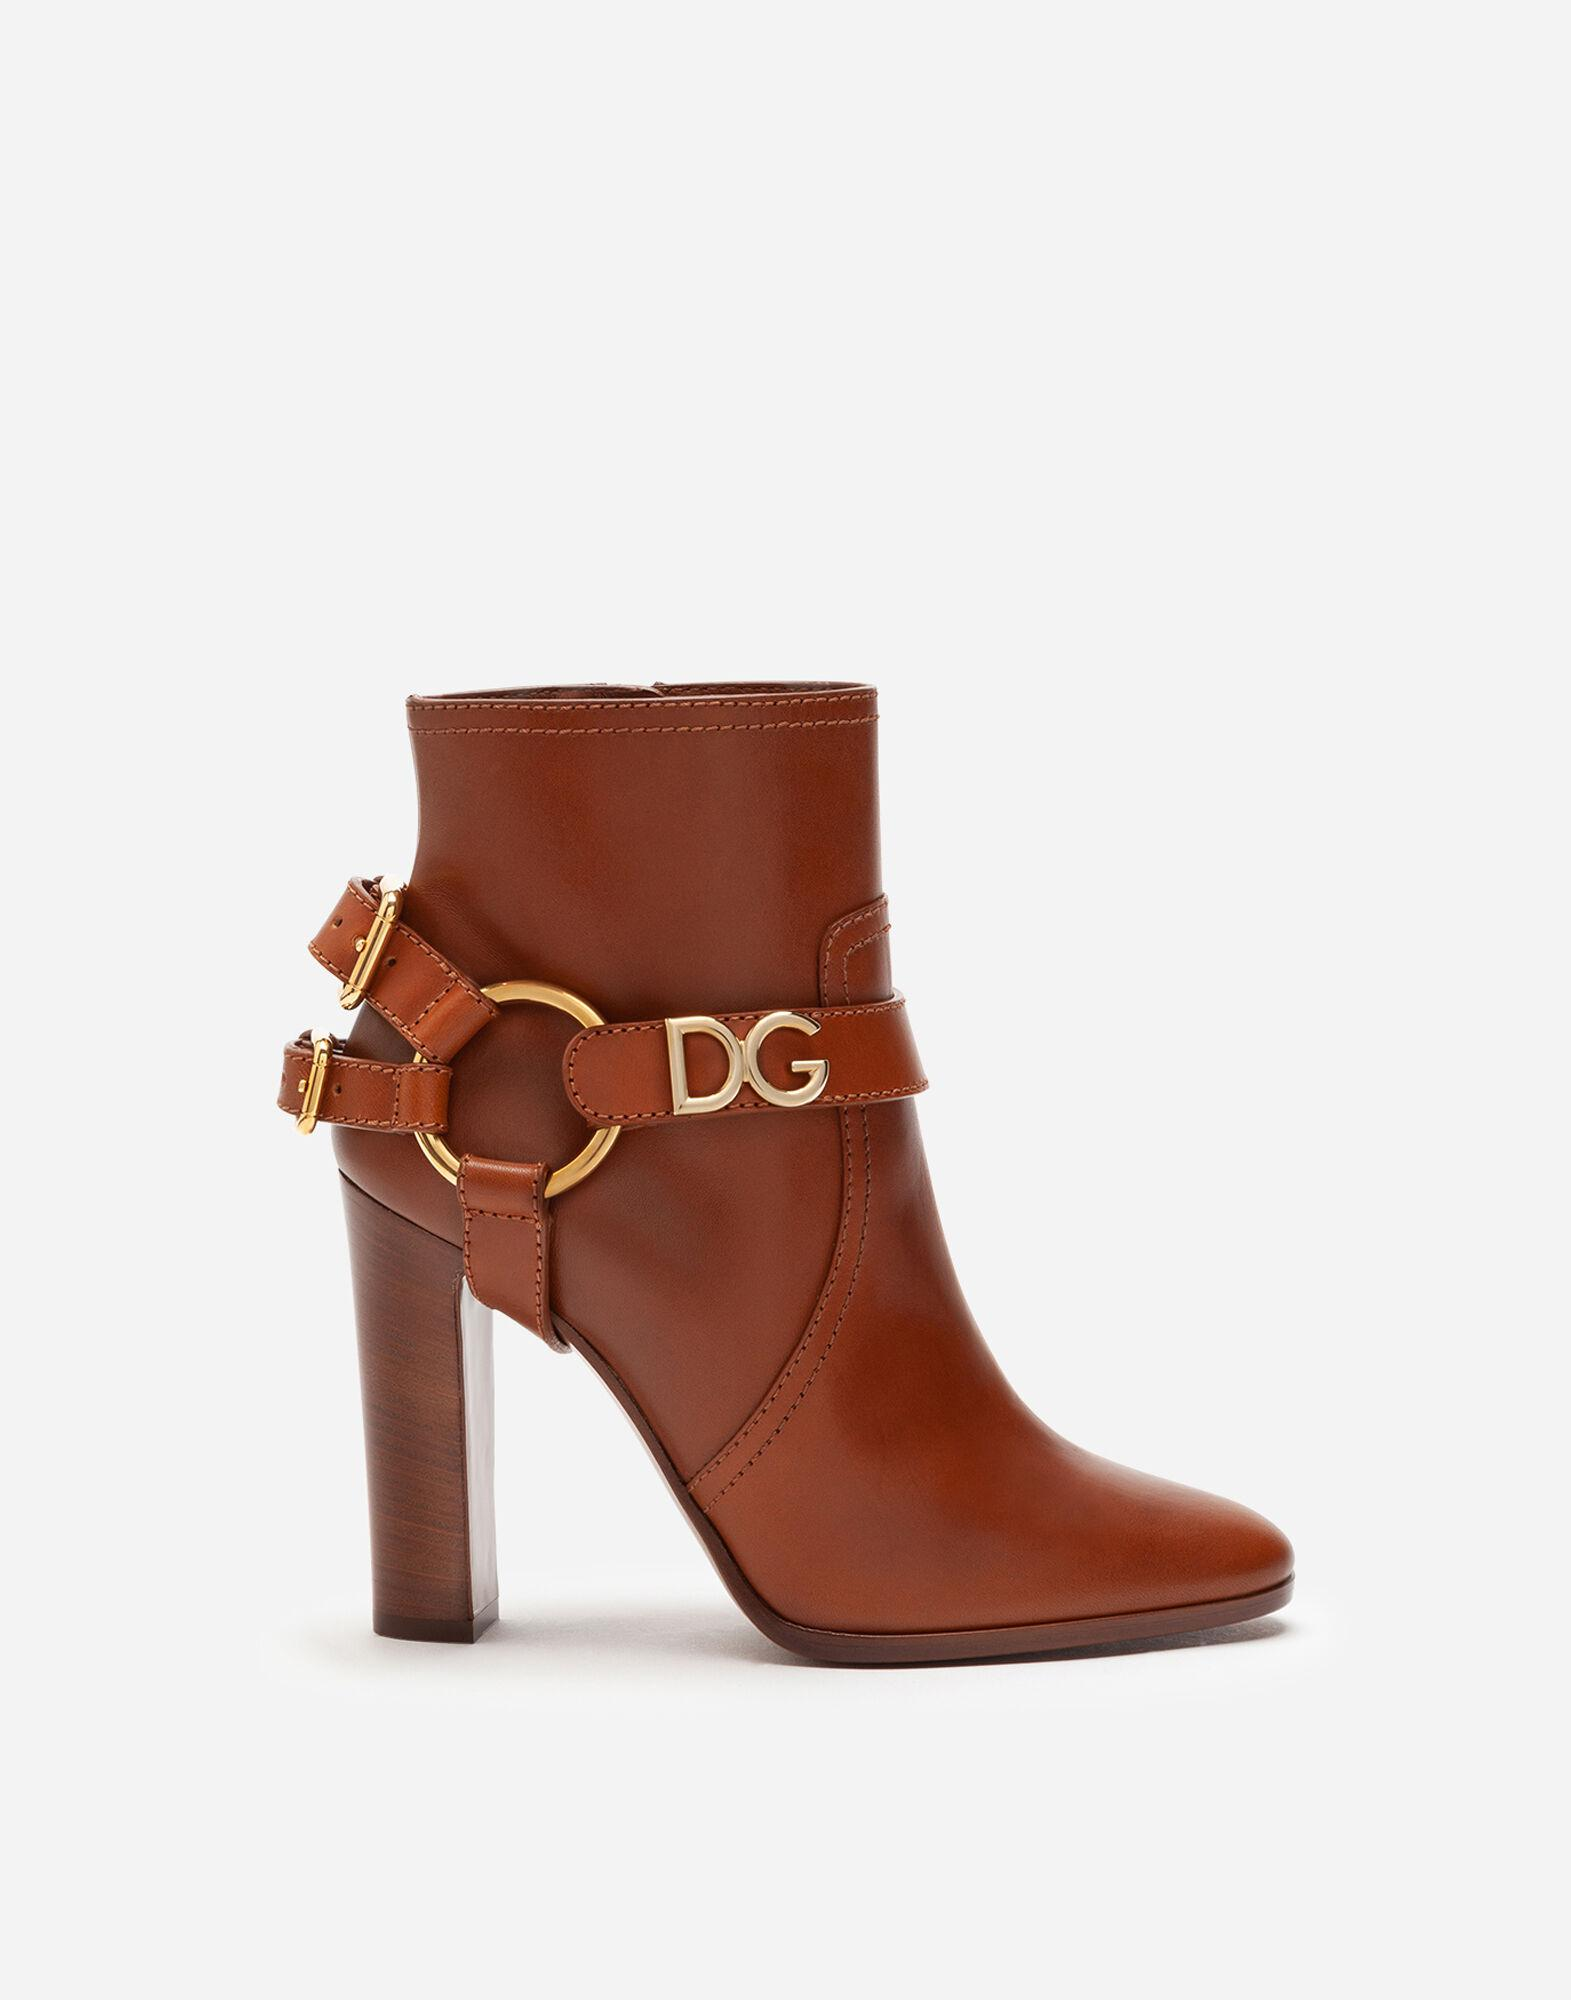 Ankle boots in cowhide with DG bracket logo